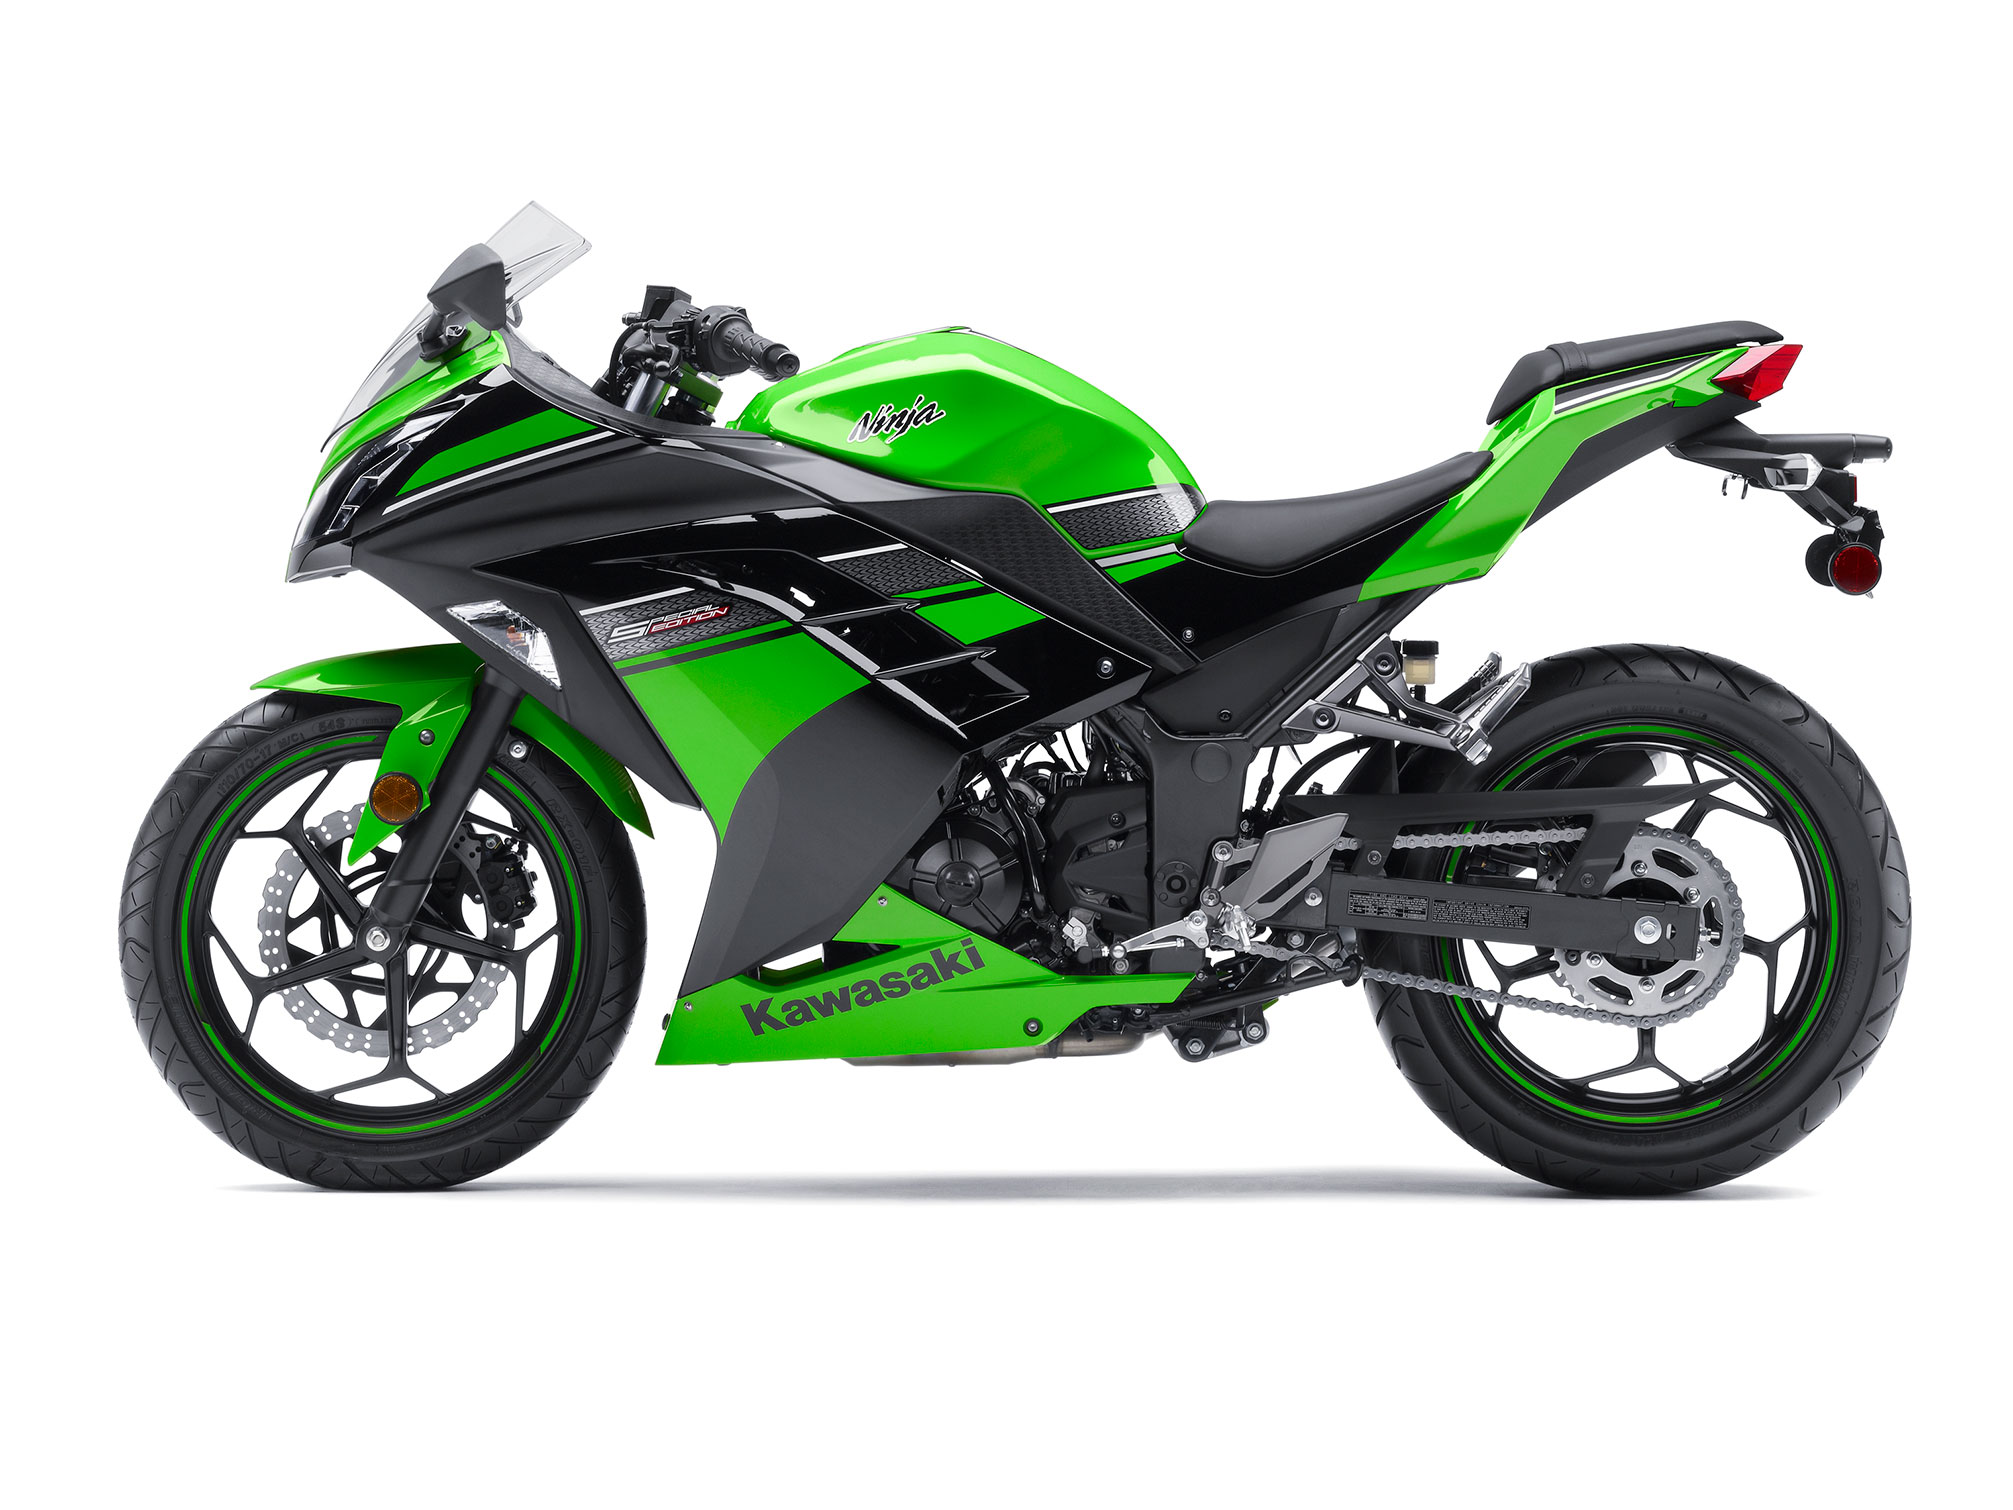 2013 Kawasaki Ninja 300 SE Review